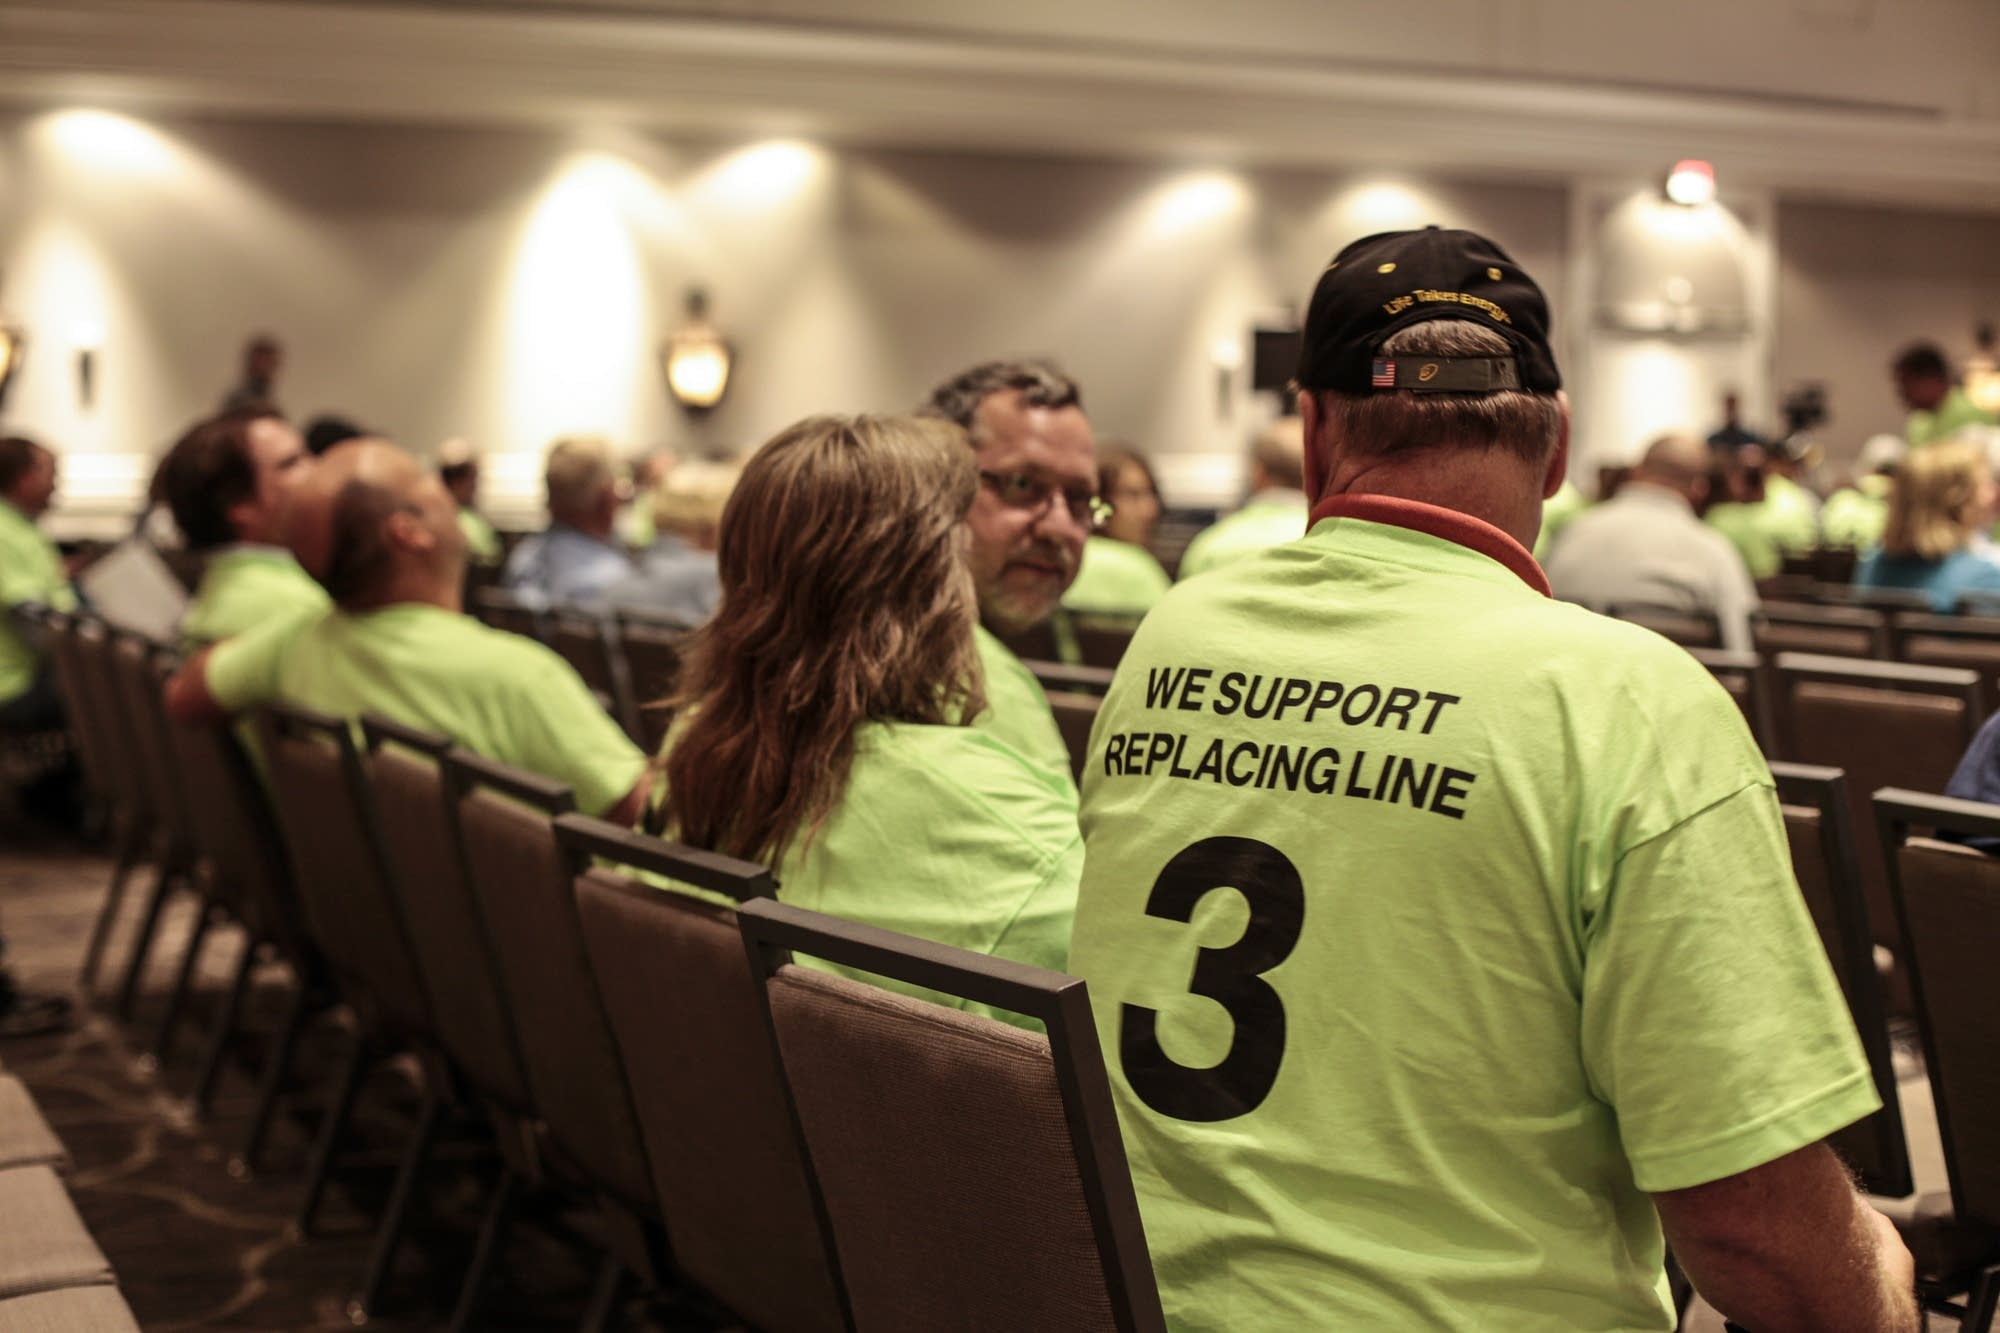 Enbridge Line 3 supporters attend a public hearing in St. Paul last year.